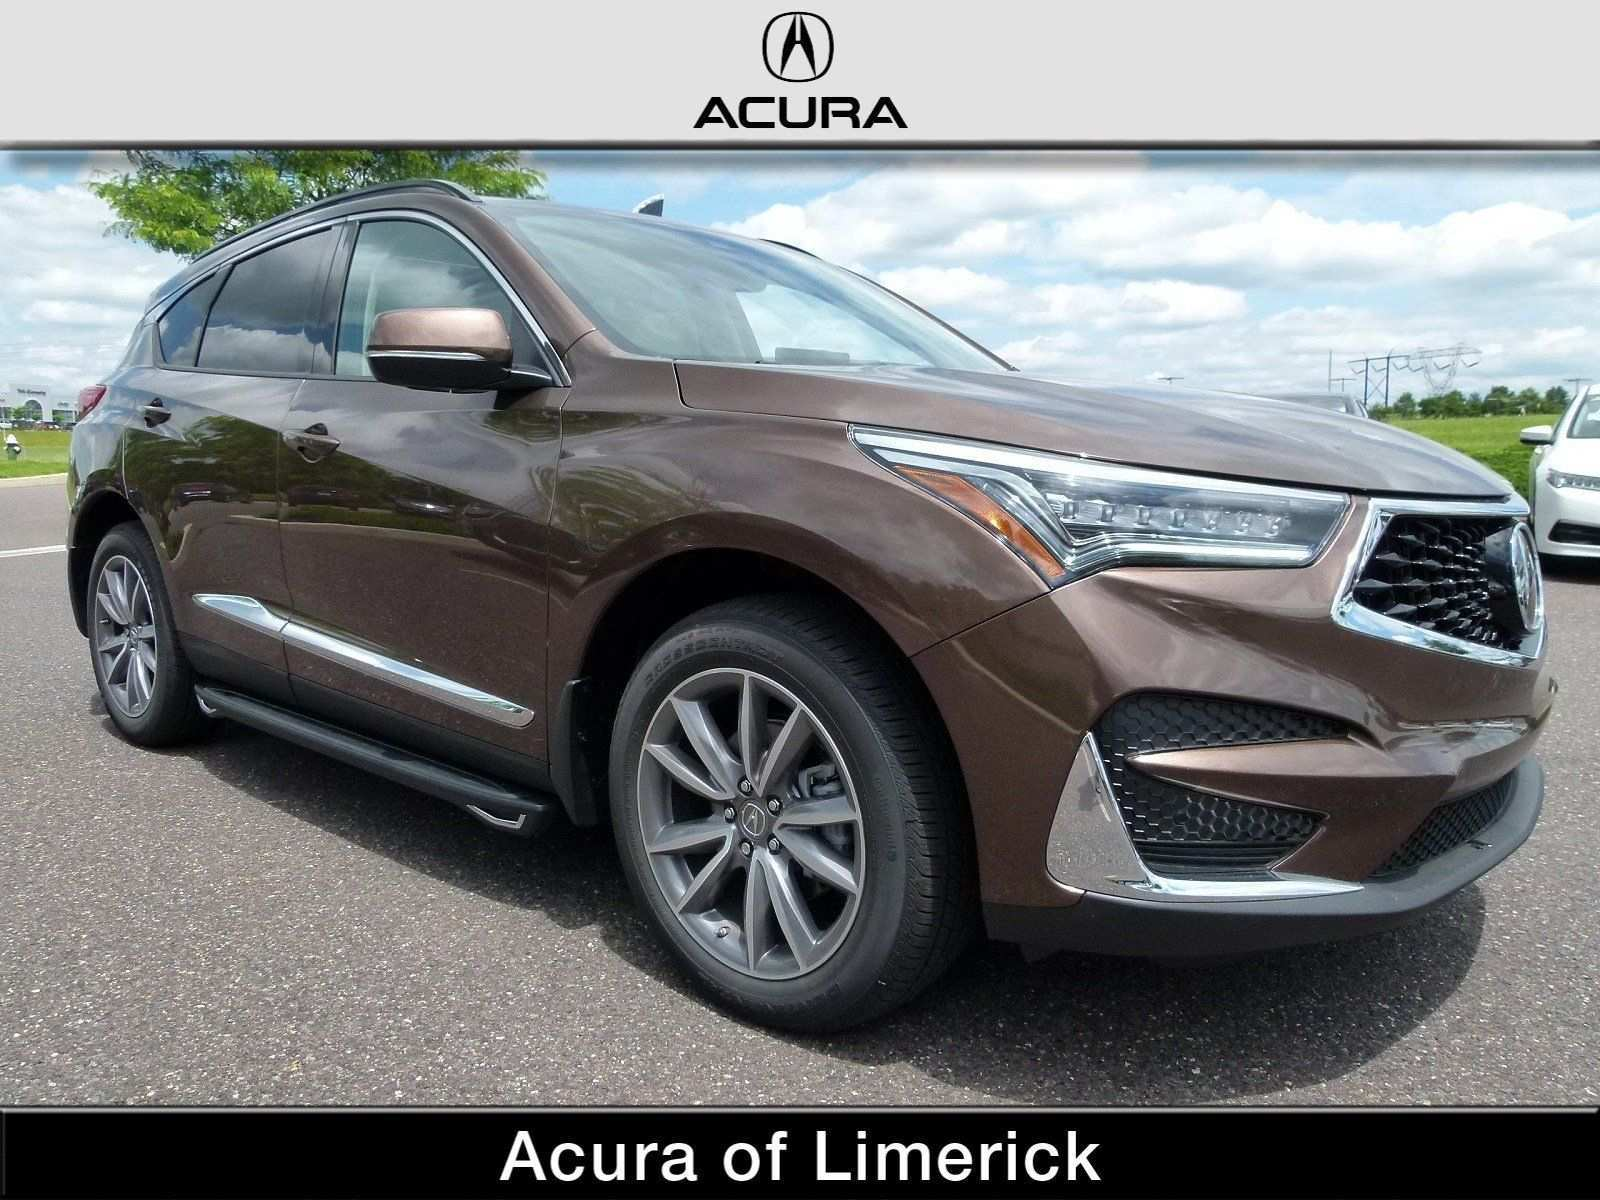 69 New The Acura New Models 2019 Interior Exterior And Review Prices for The Acura New Models 2019 Interior Exterior And Review